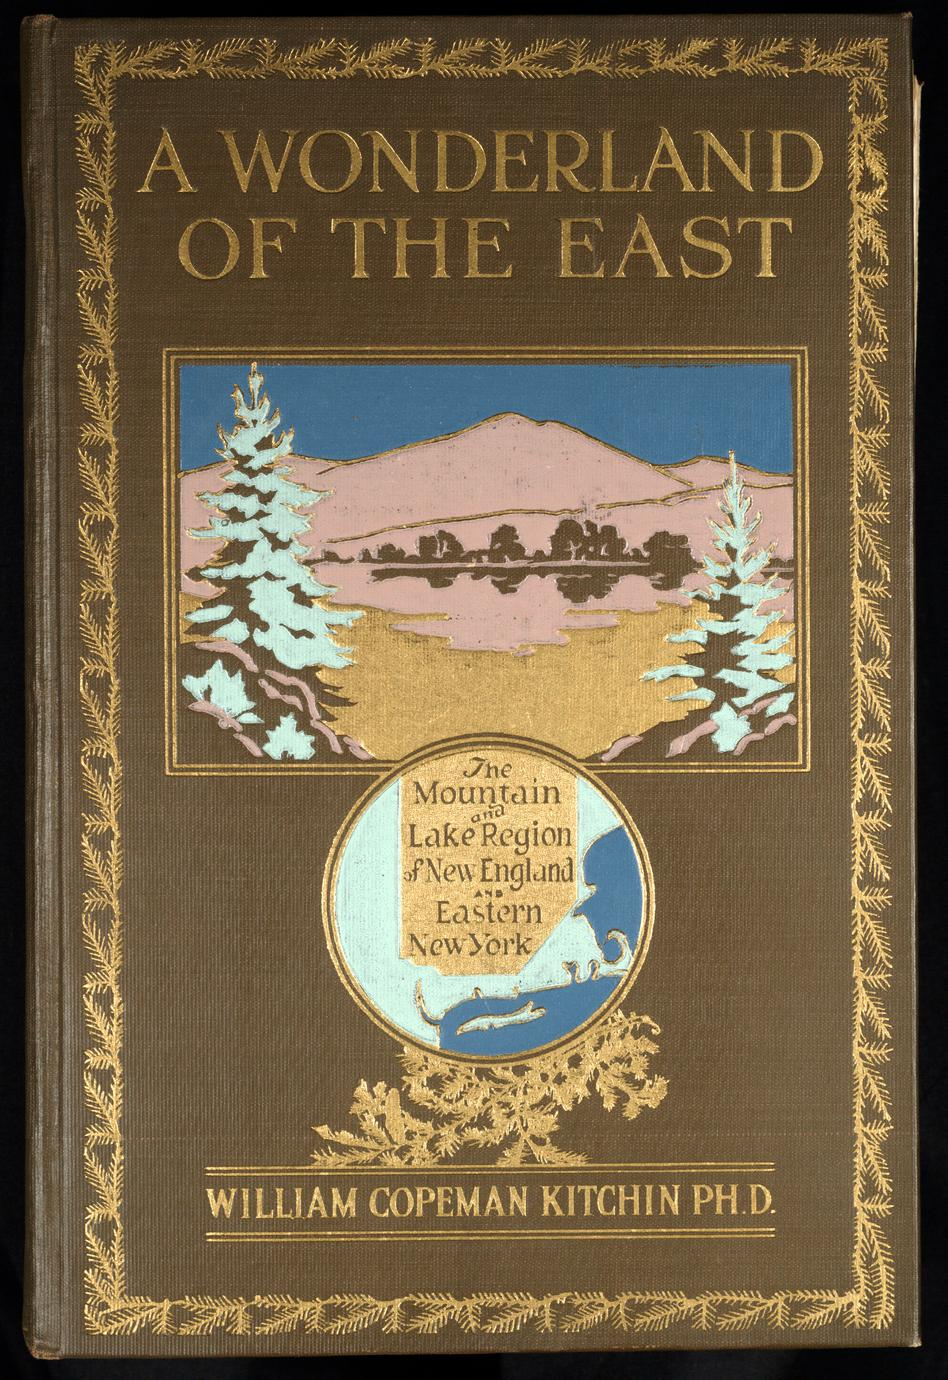 A wonderland of the East : comprising the lake and mountain region of New England and eastern New York ; a book for those who love to wander among beautiful lakes and rivers, valleys and mountains, or in places made famous by historic men and events ; to which is added an afterword on the worth-while in this wonderland of the East, with some suggestions to motor-tourists on how best to find it (1 of 4)